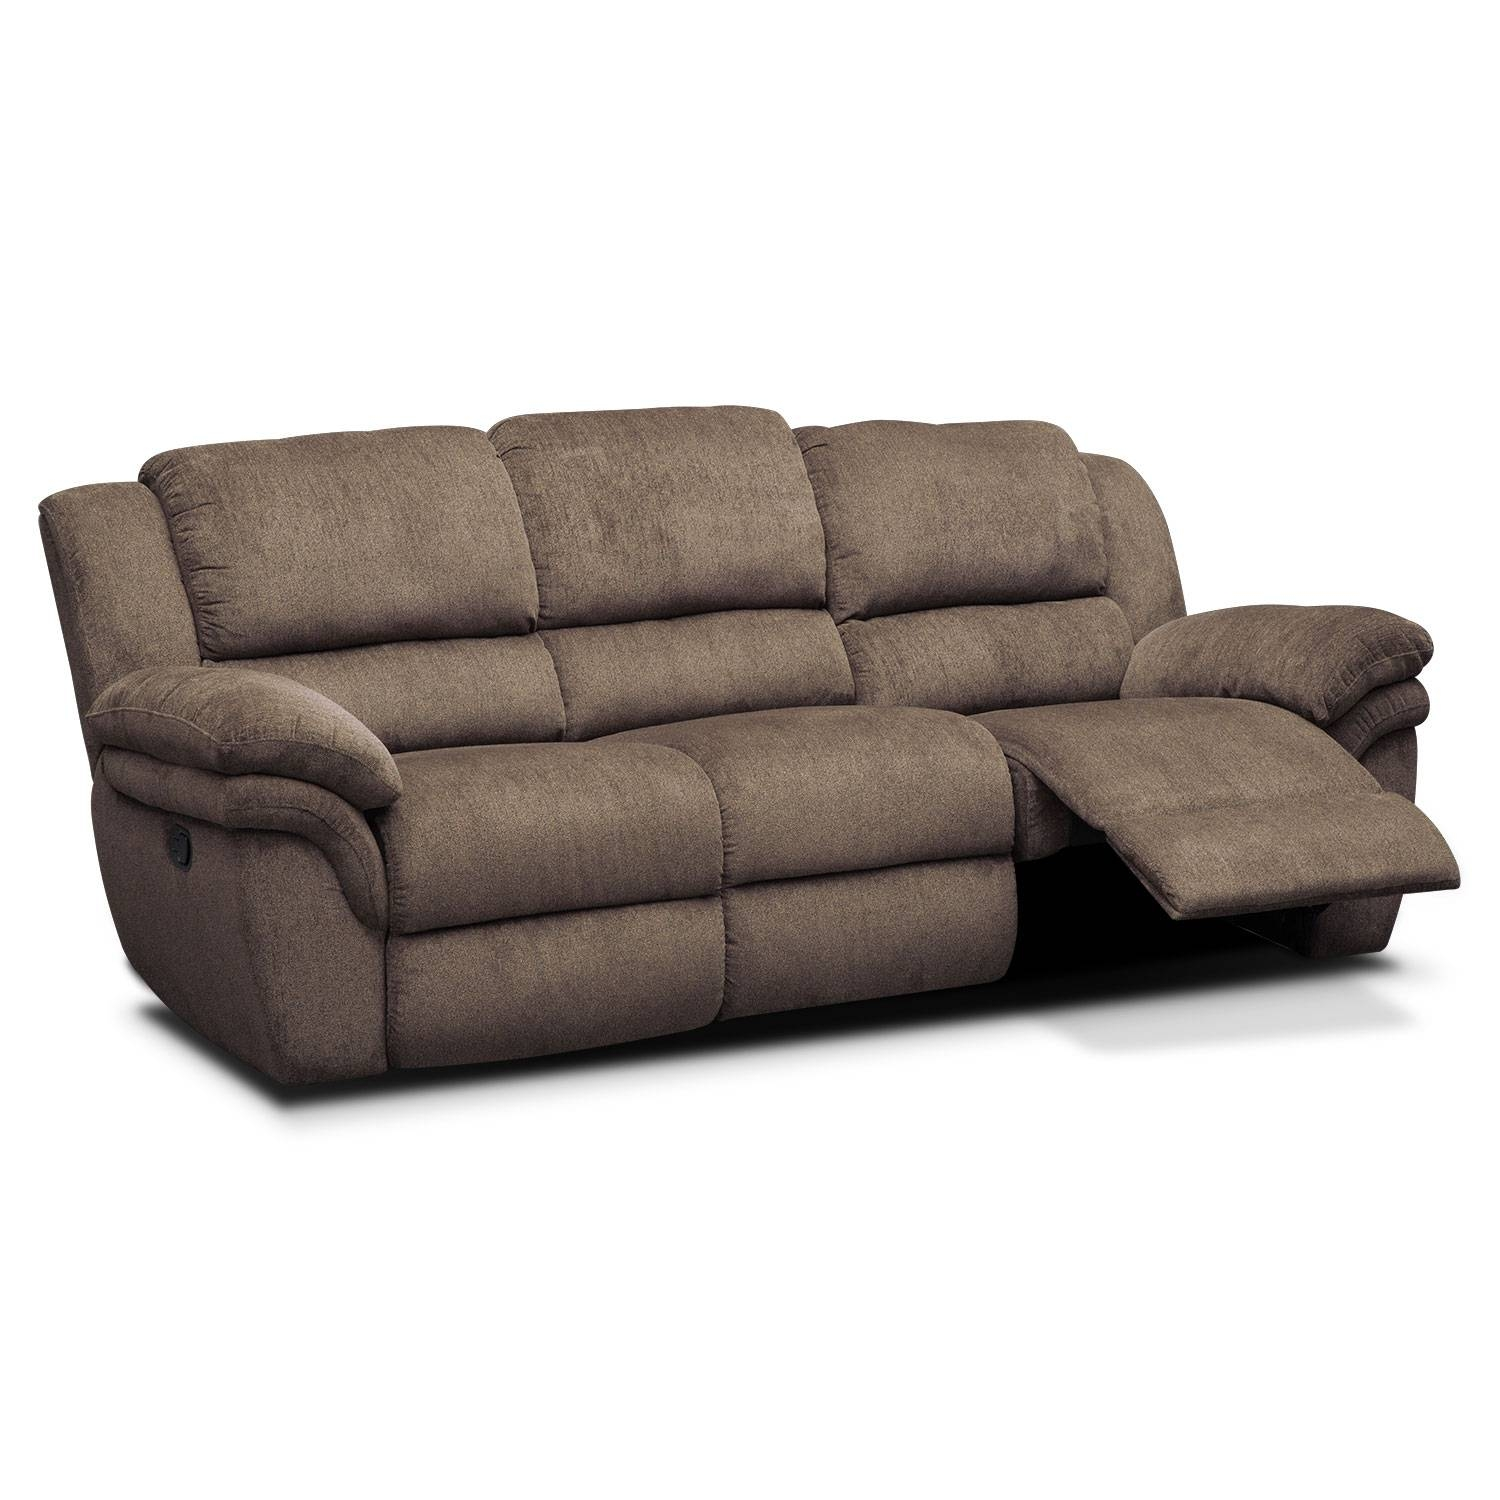 Aldo Manual Reclining Sofa - Mocha | American Signature Furniture with Recliner Sofa Chairs (Image 2 of 30)